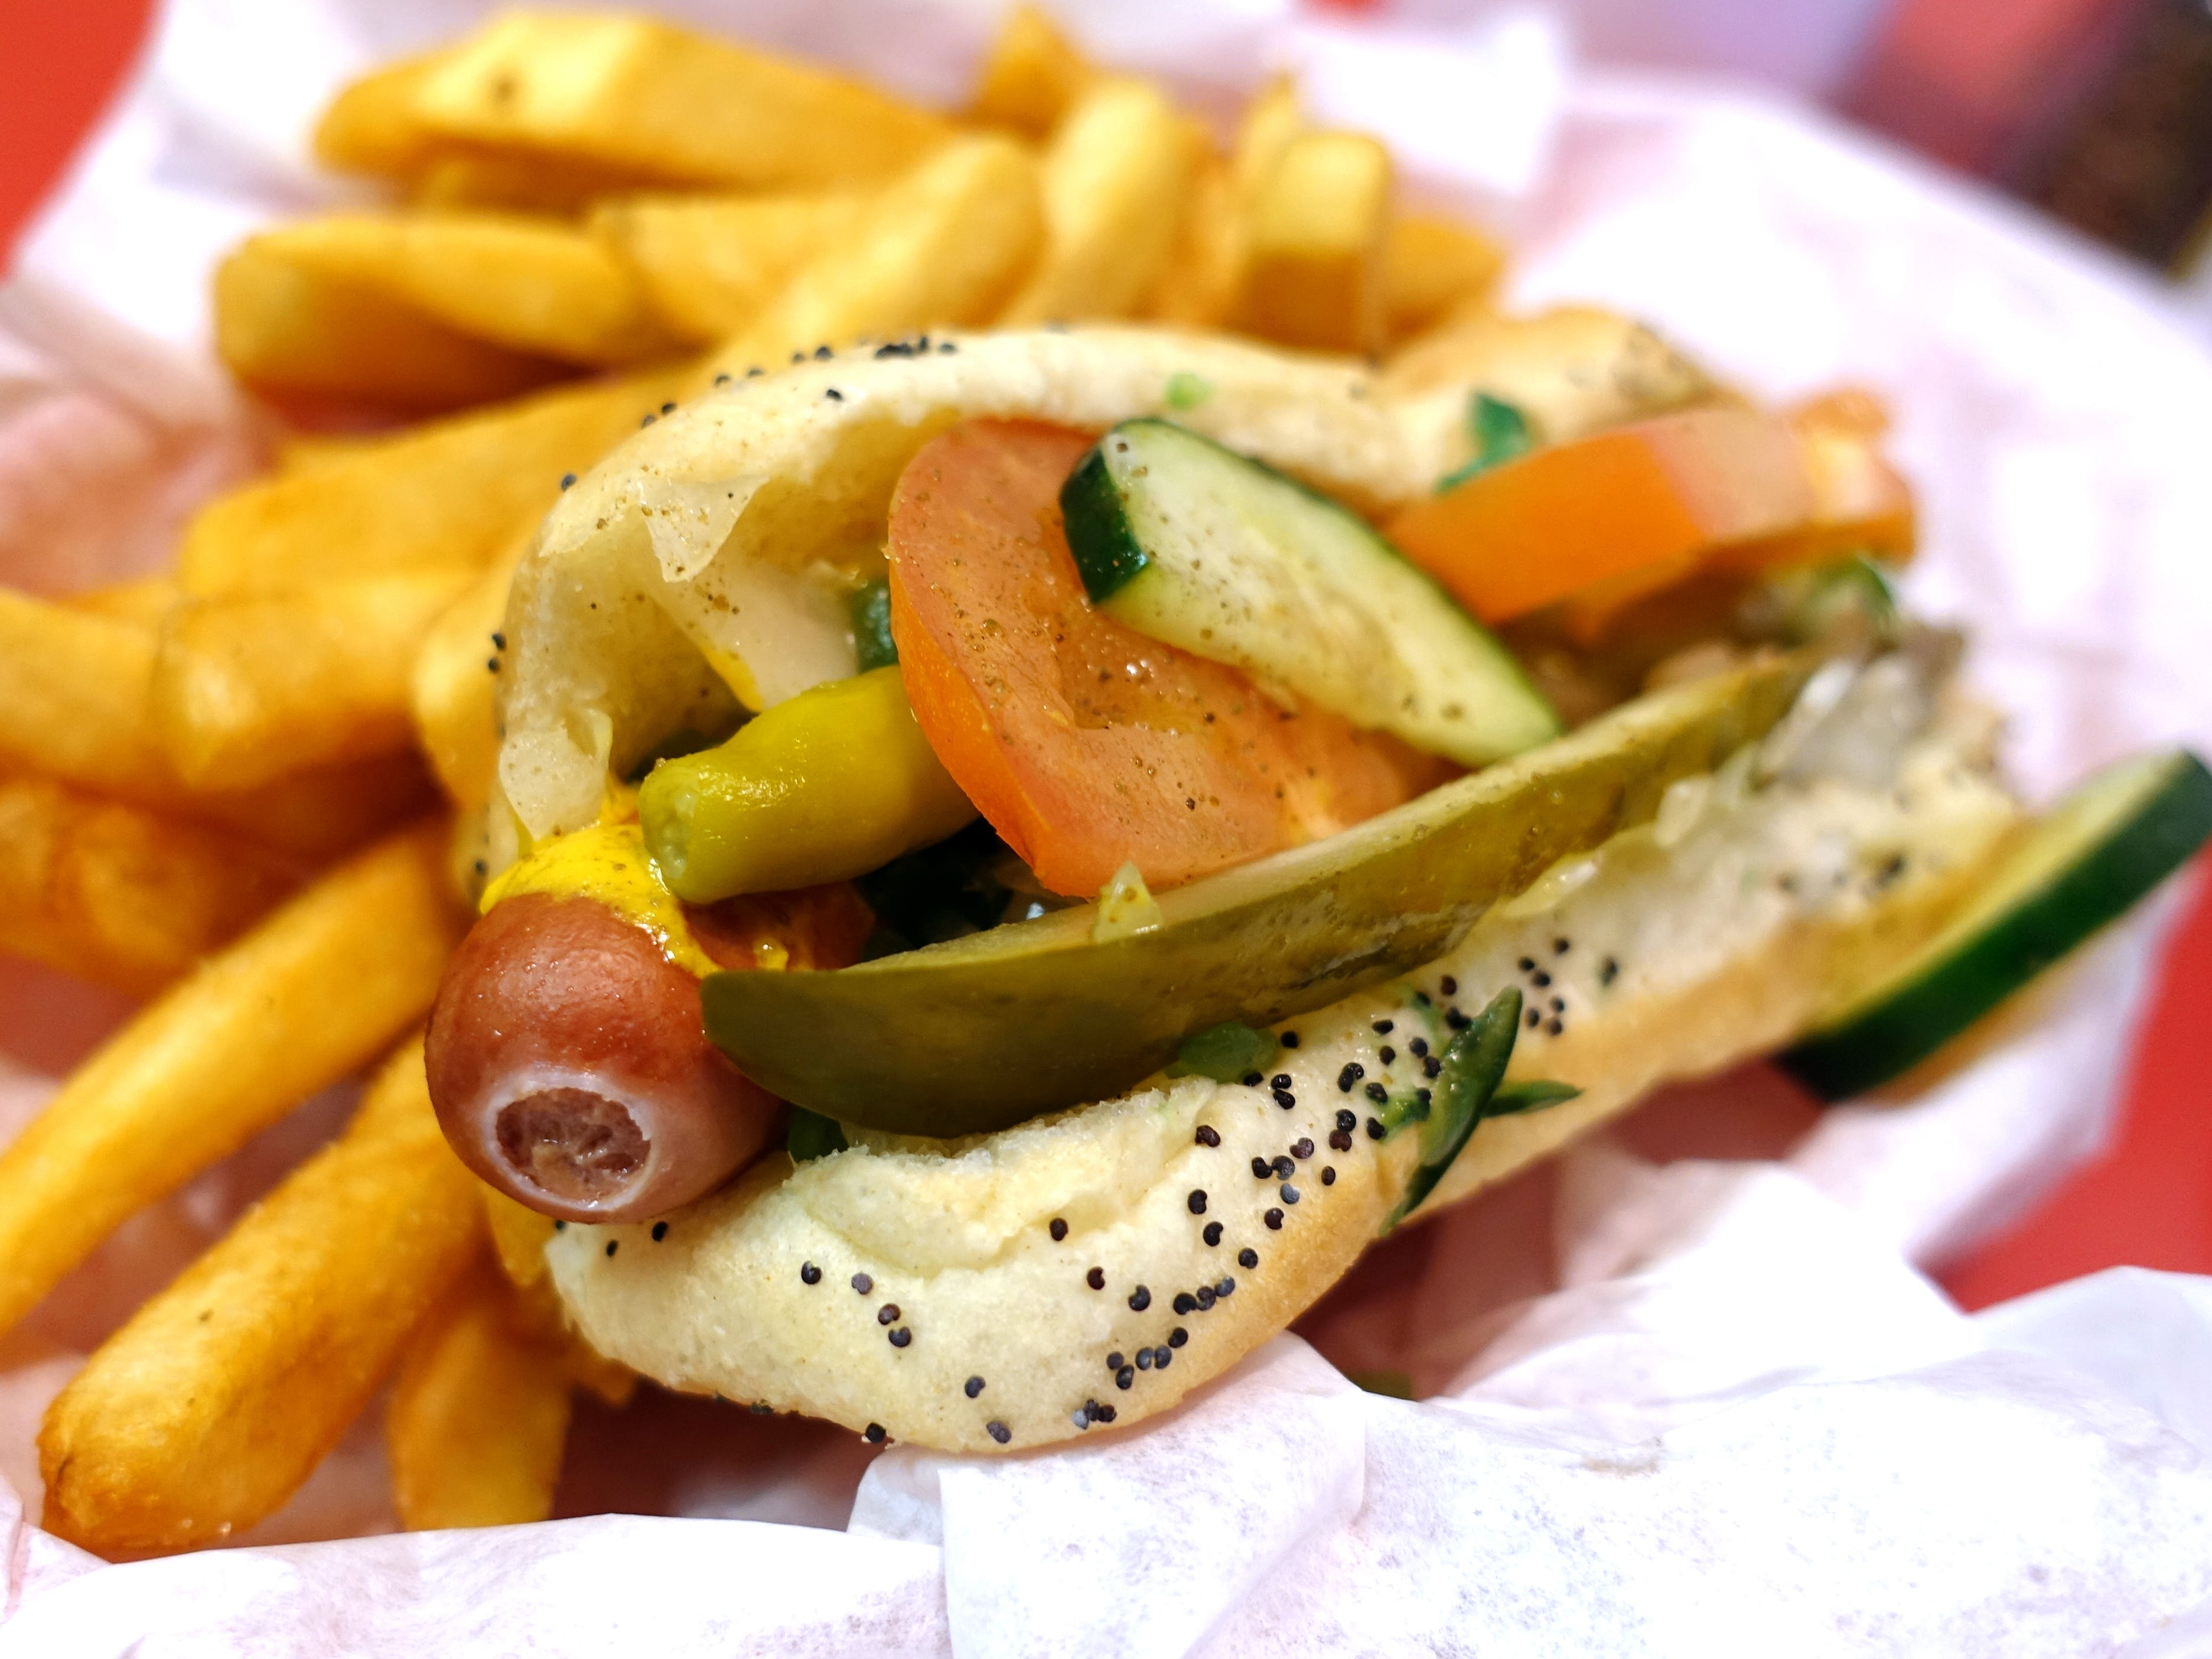 Traditional Chicago hotdog at Chicagoland Hotdogs & More in Mesa.